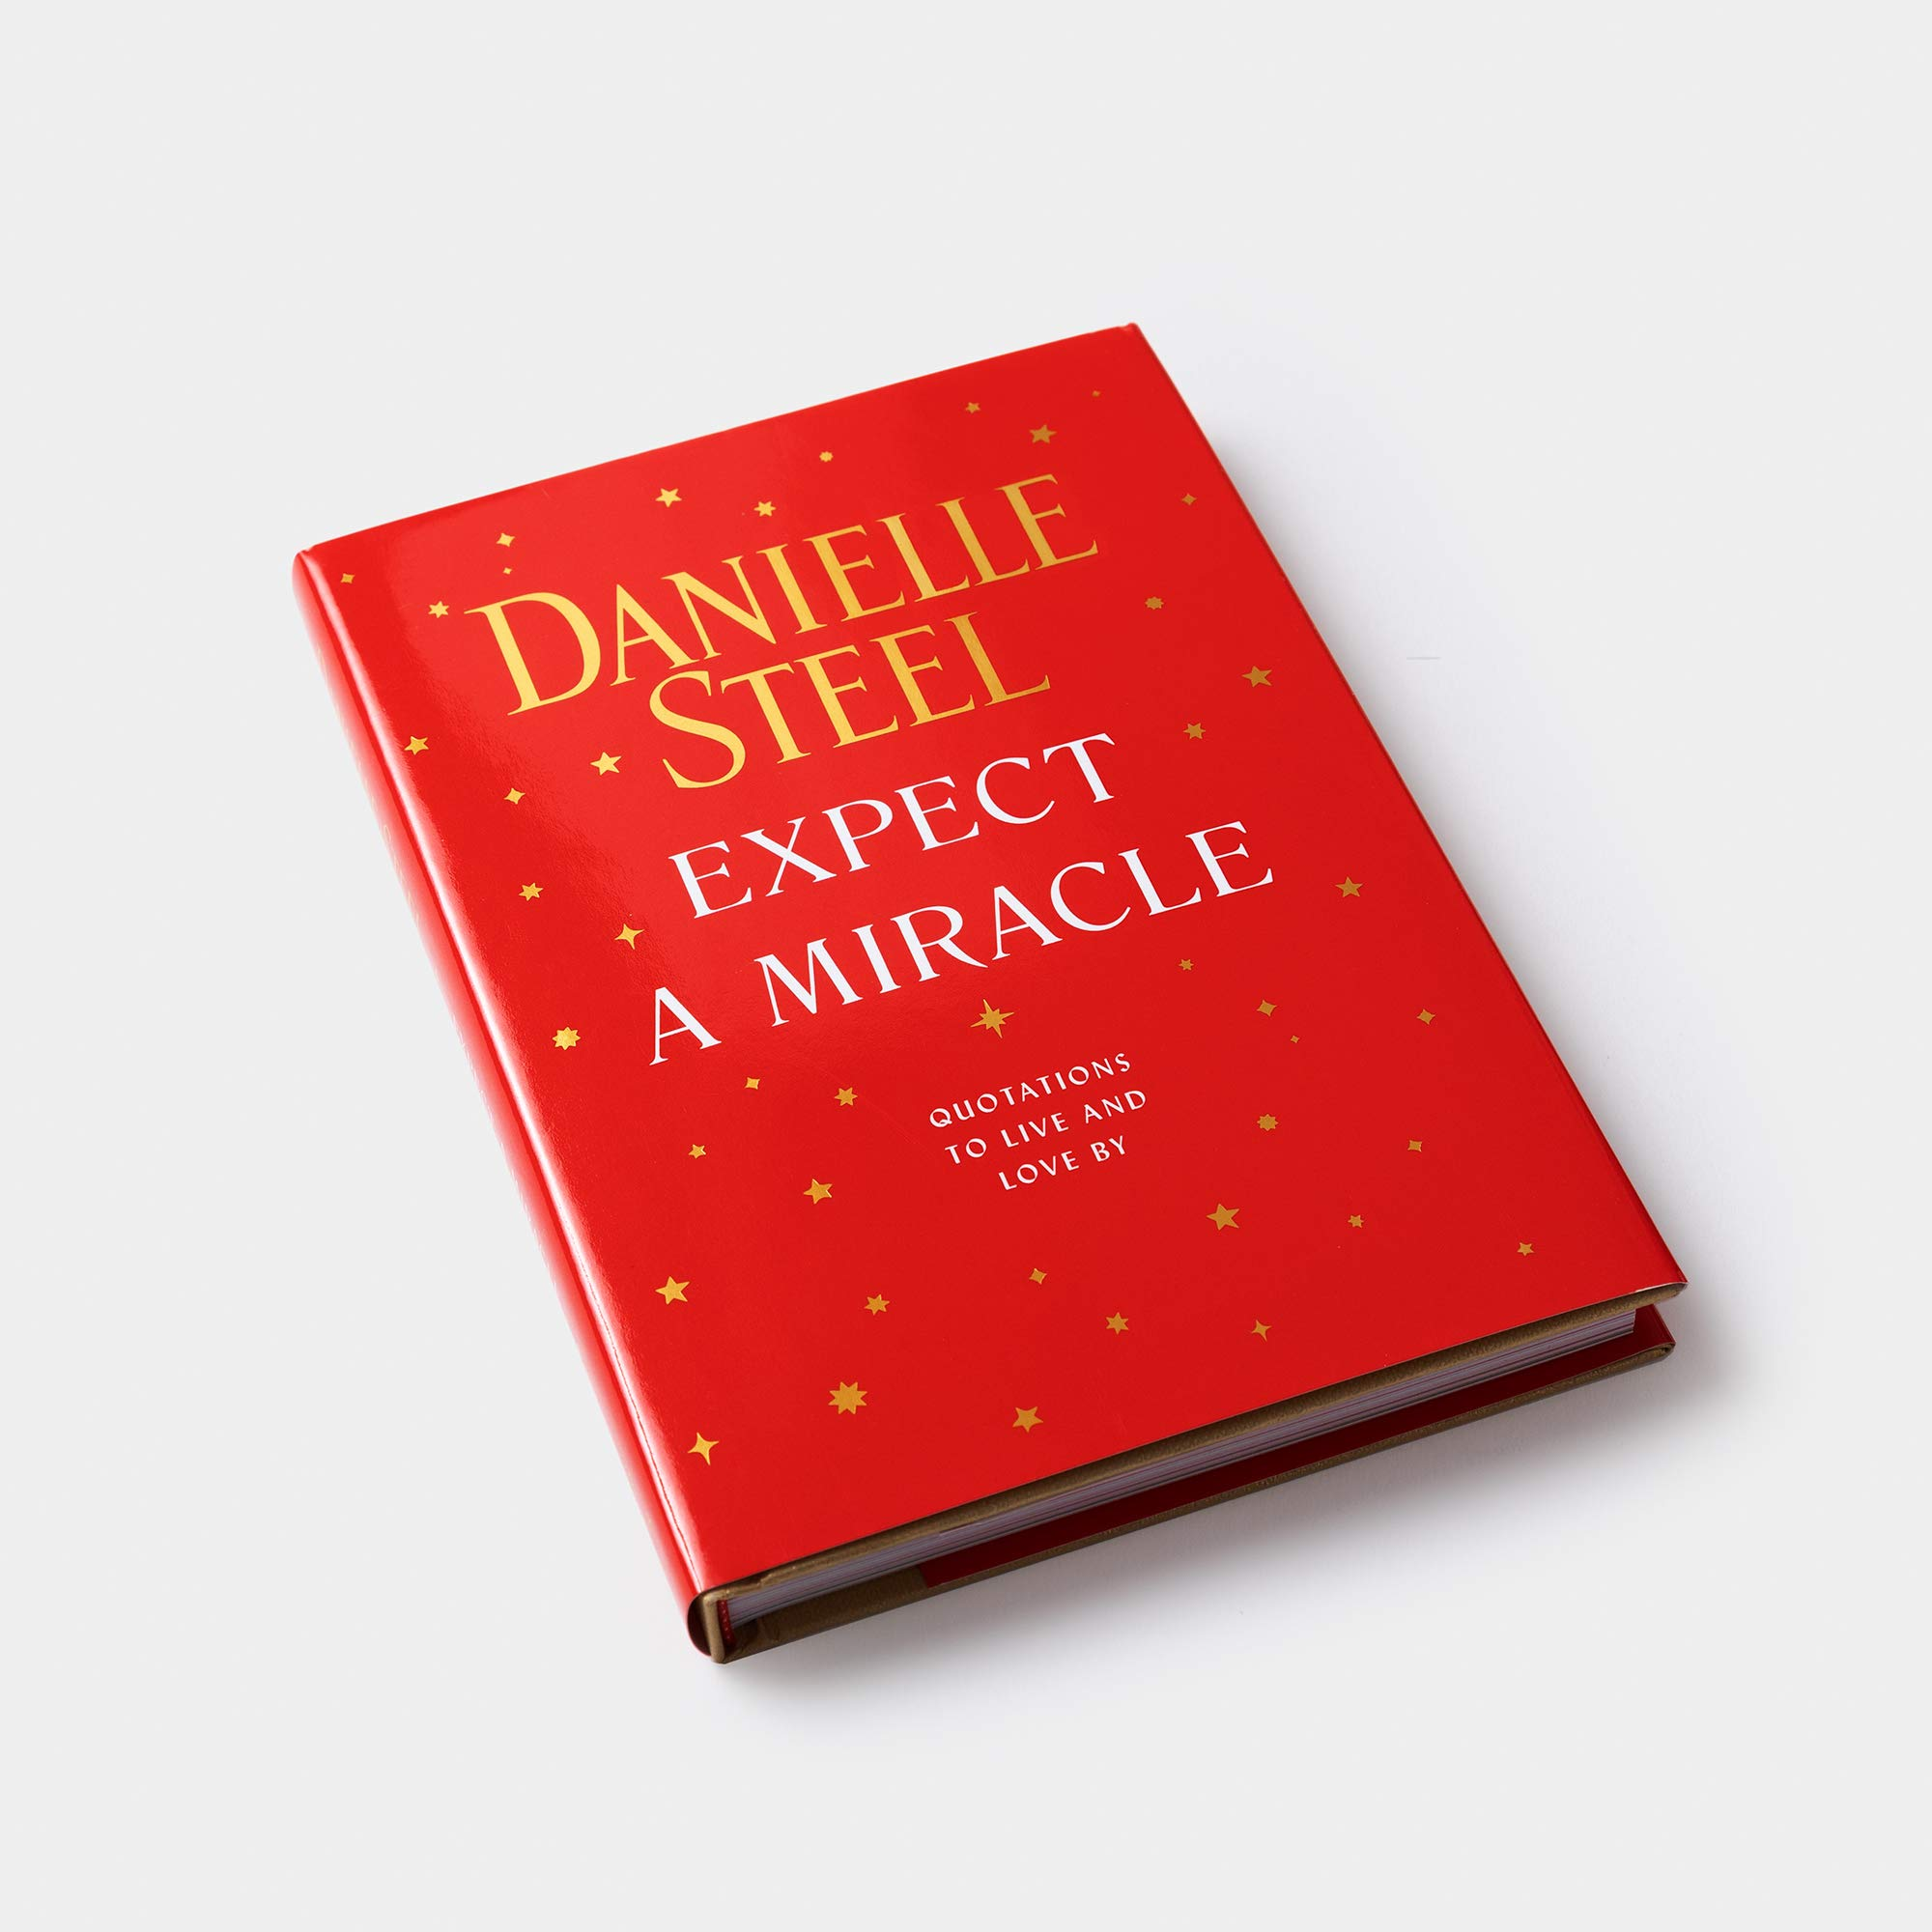 Expect a Miracle: Quotations to Live and Love By: Steel, Danielle: 9780593136584: Amazon.com: Books